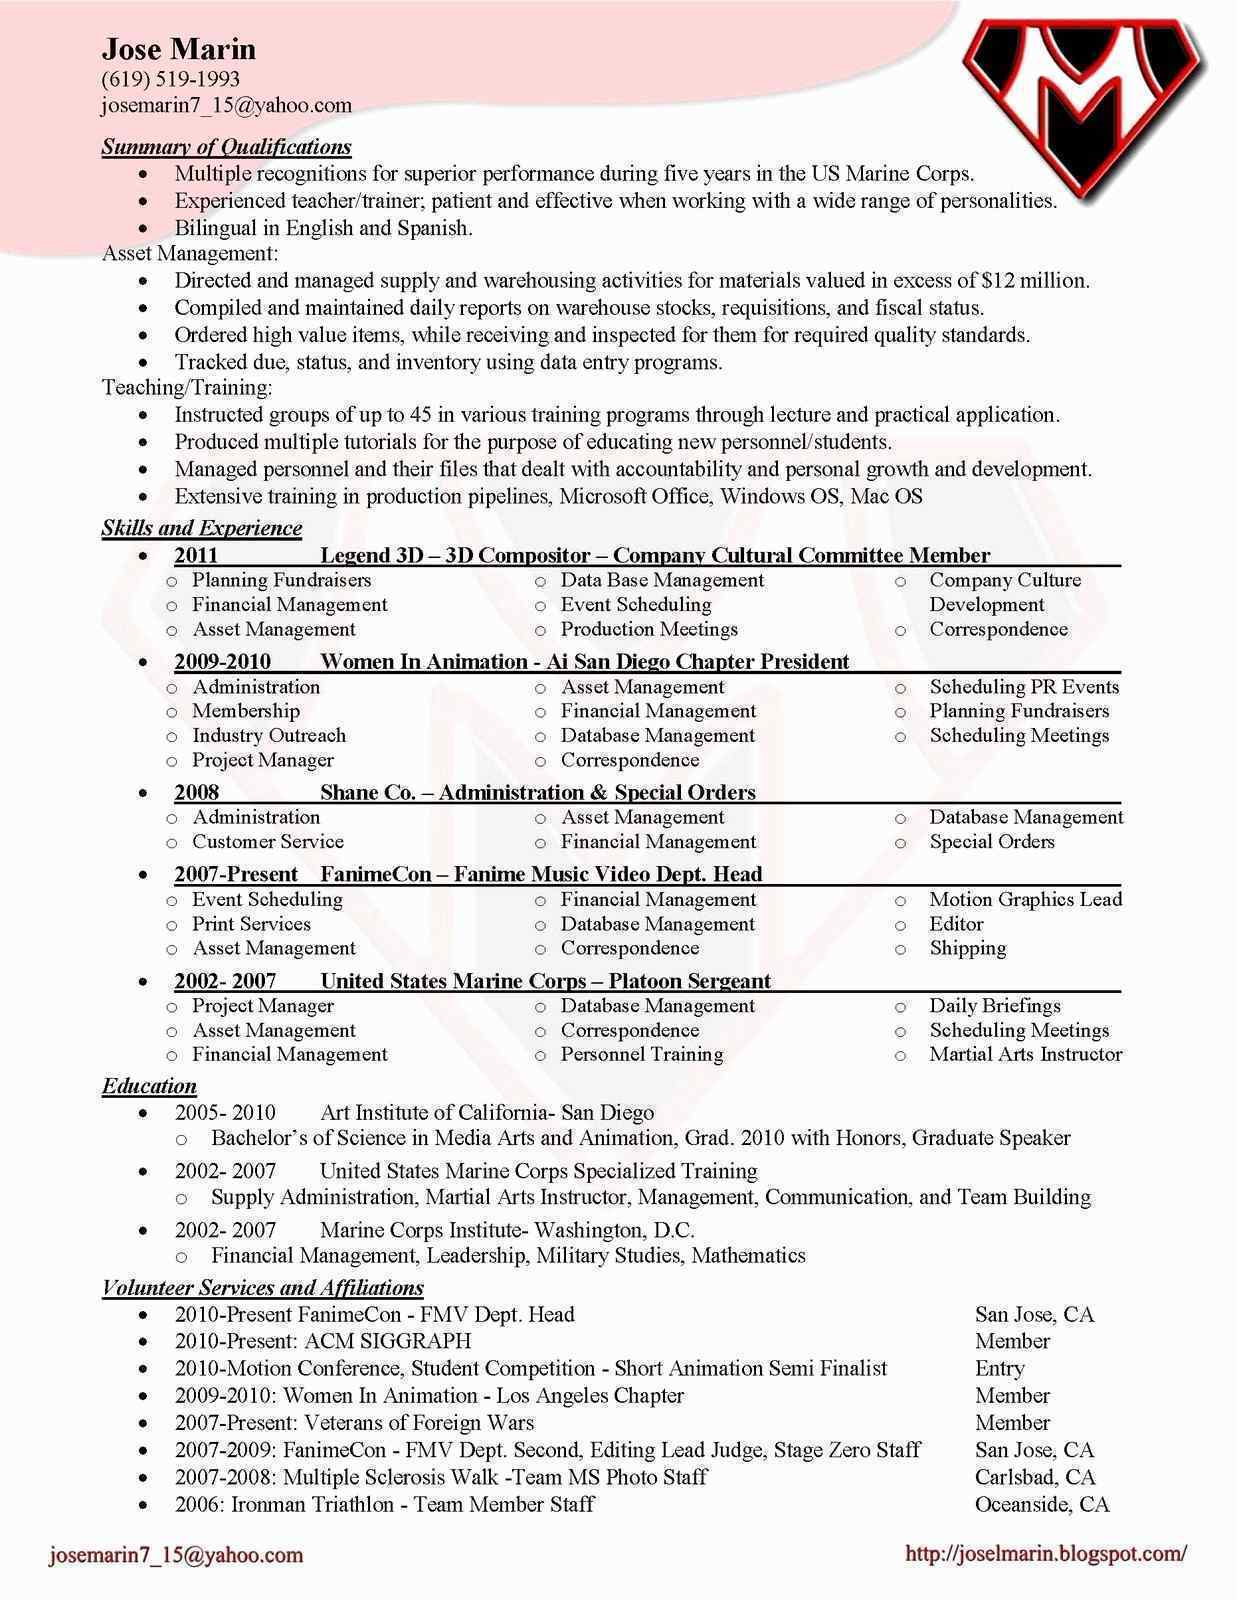 Resume Entry Level Template - Book Review Template for Kids Unique Beautiful Entry Level Resume